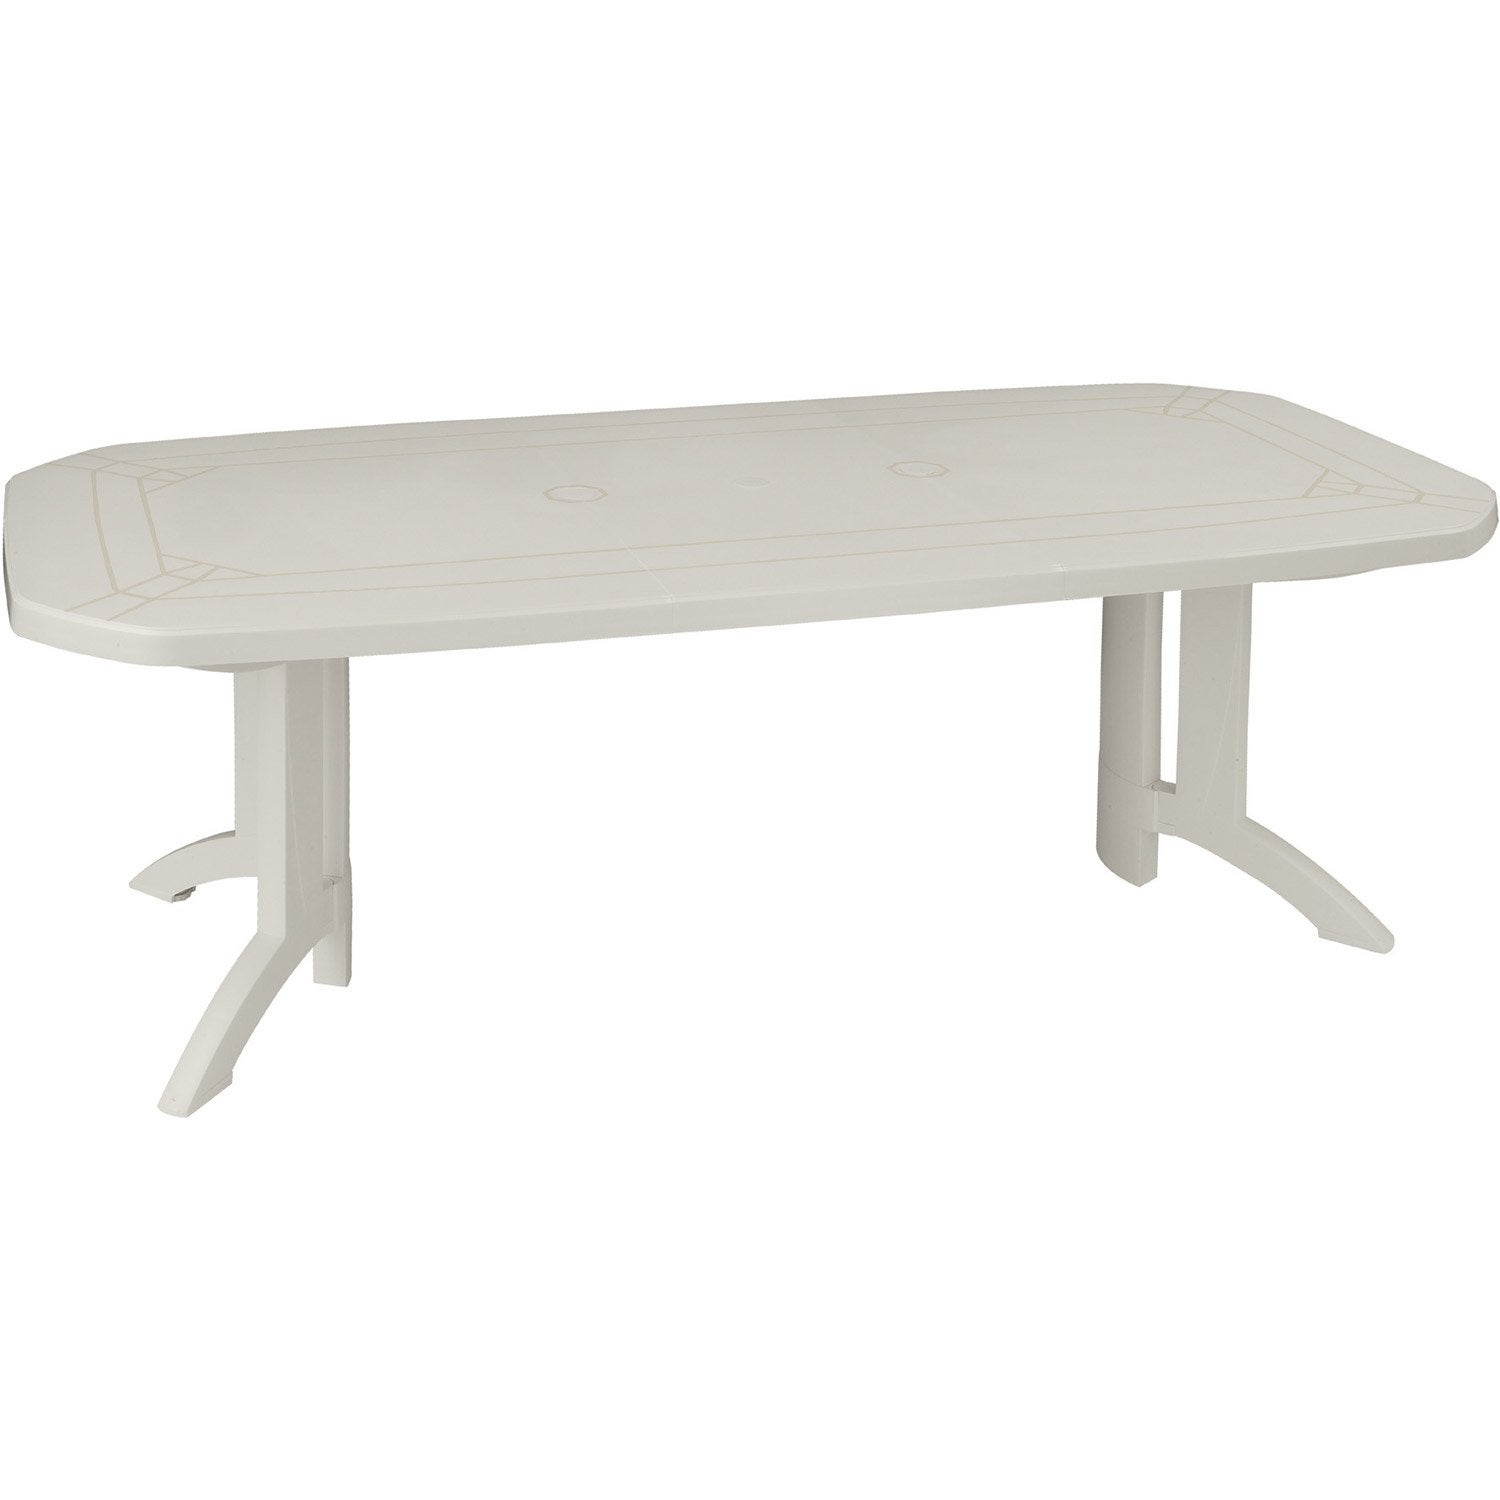 Table de jardin grosfillex v ga rectangulaire blanc 10 - Table de jardin en plastique blanc ...